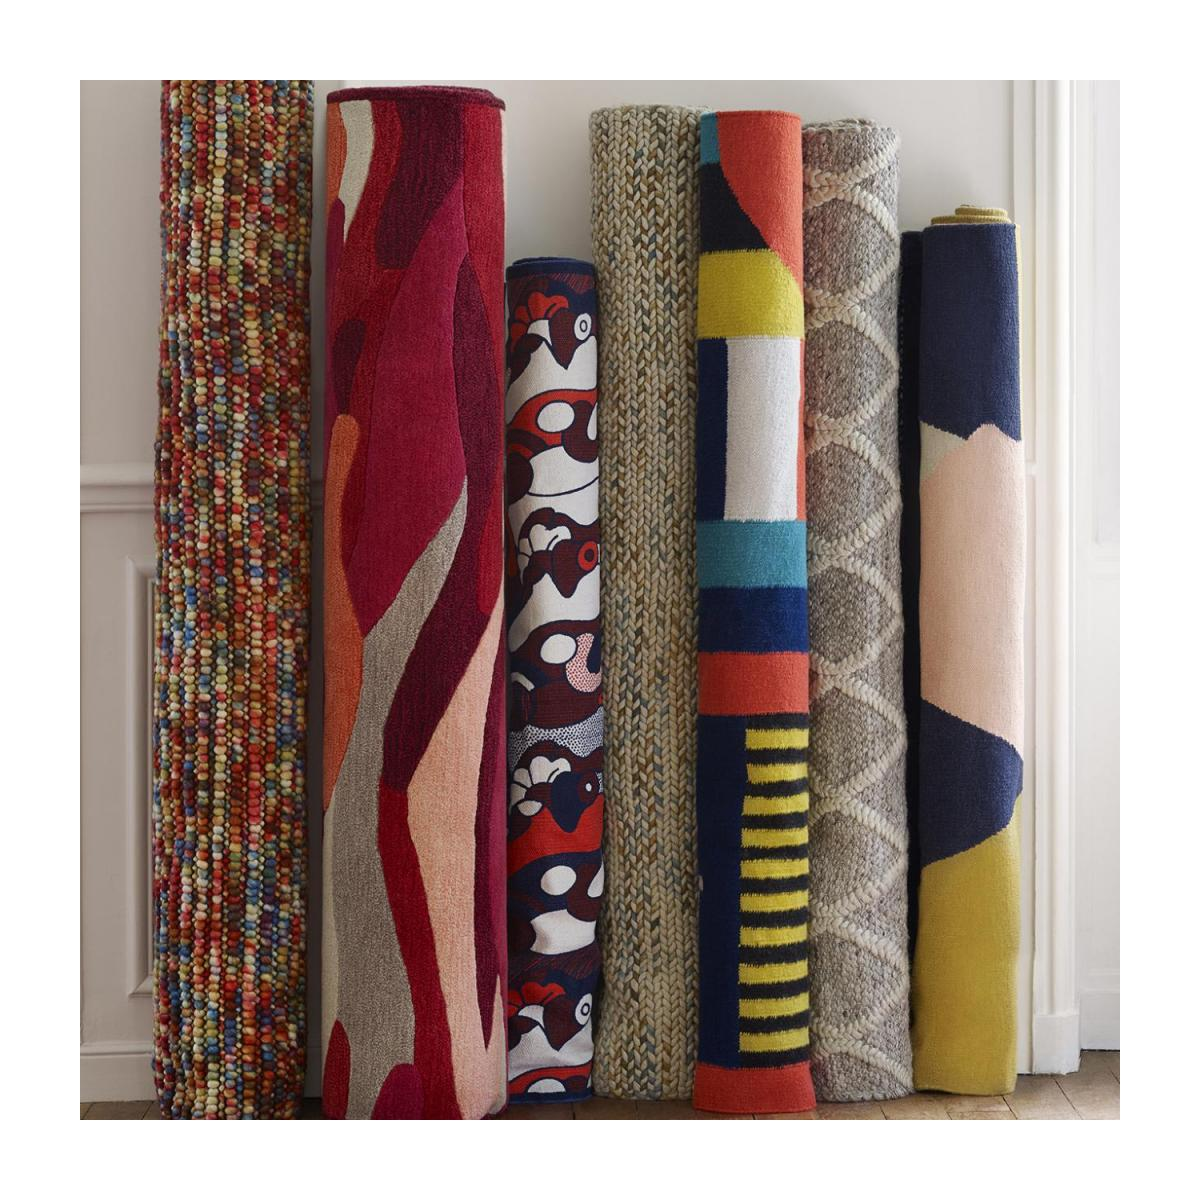 Tufted carpet main made of wool 240x170cm, with patterns n°7